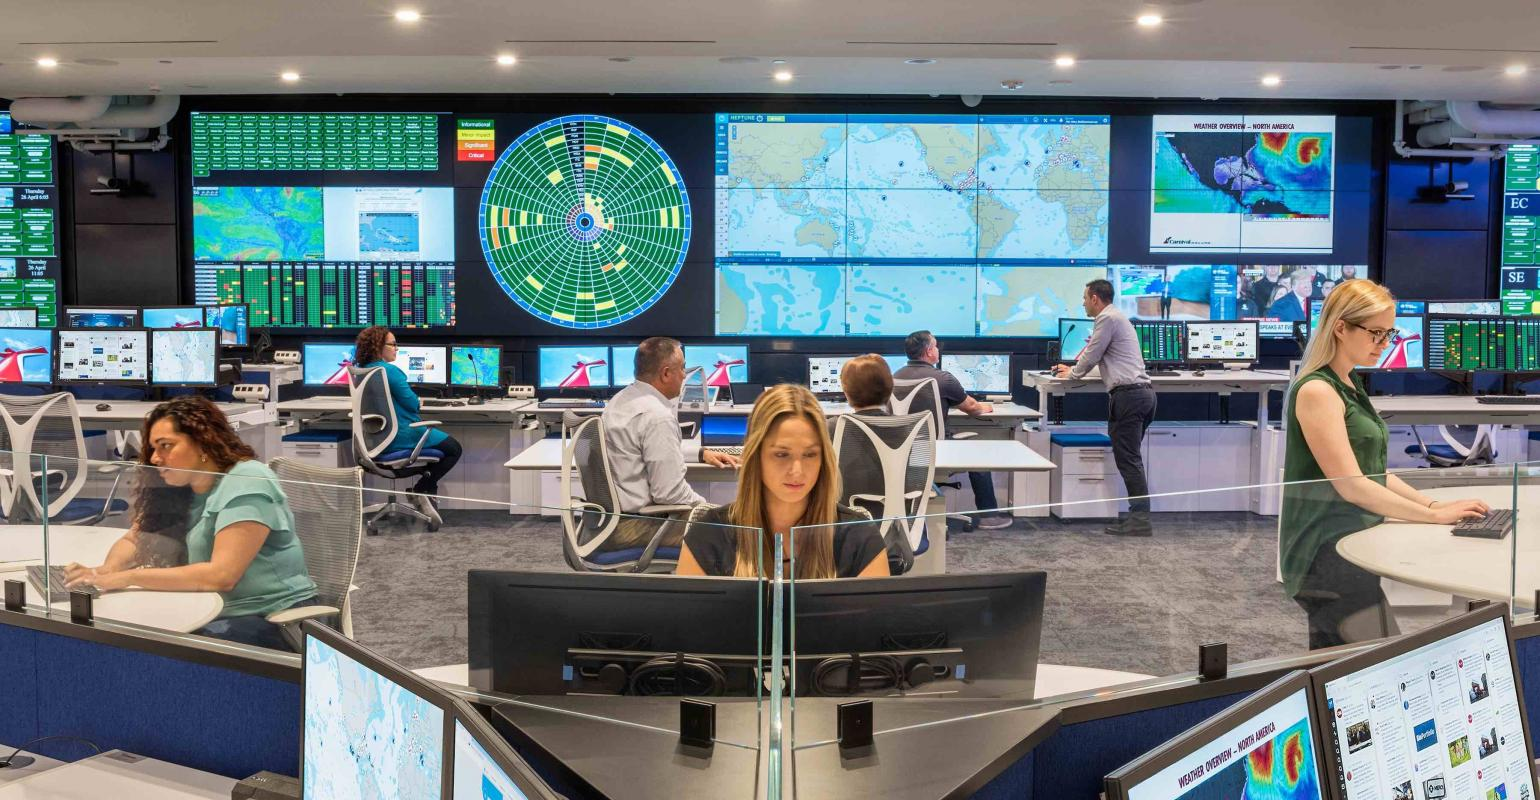 Carnival shows off cutting-edge Fleet Operations Center in Miami ...